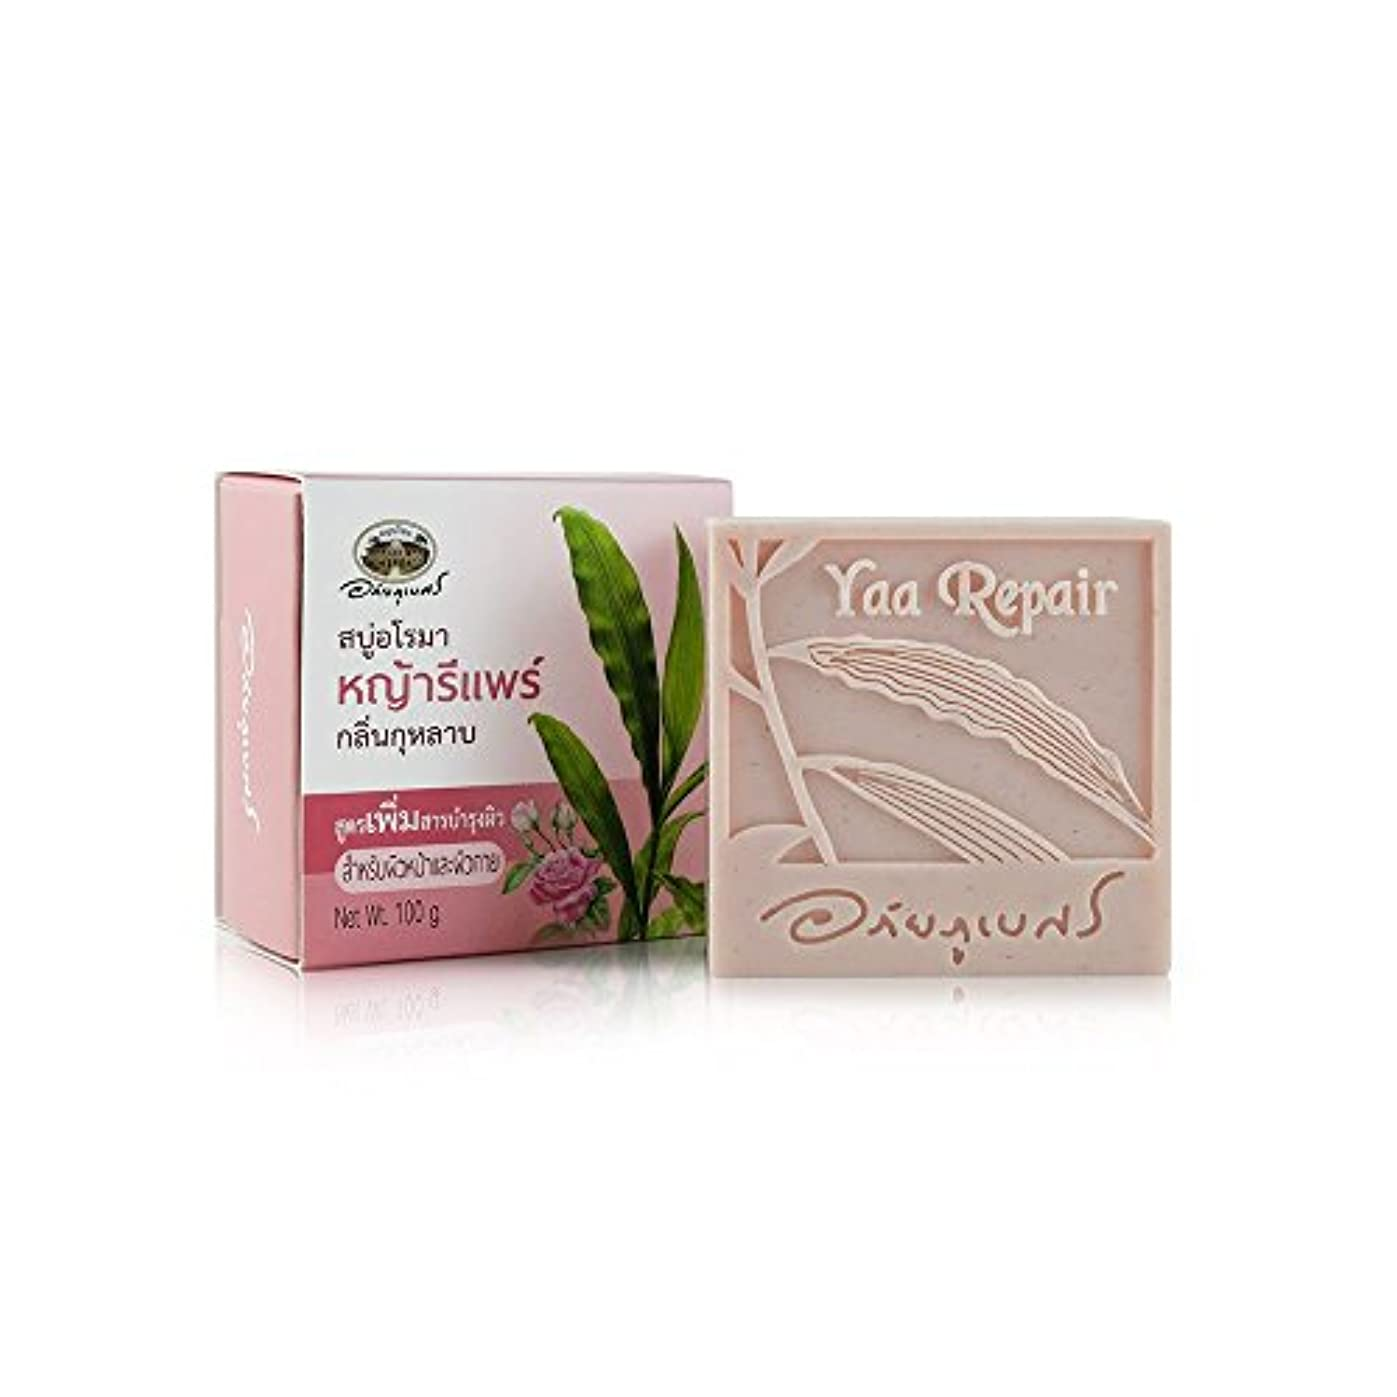 しつけ骨の折れる混沌Abhaibhubejhr Thai Aromatherapy With Rose Skin Care Formula Herbal Body Face Cleaning Soap 100g. Abhaibhubejhr...